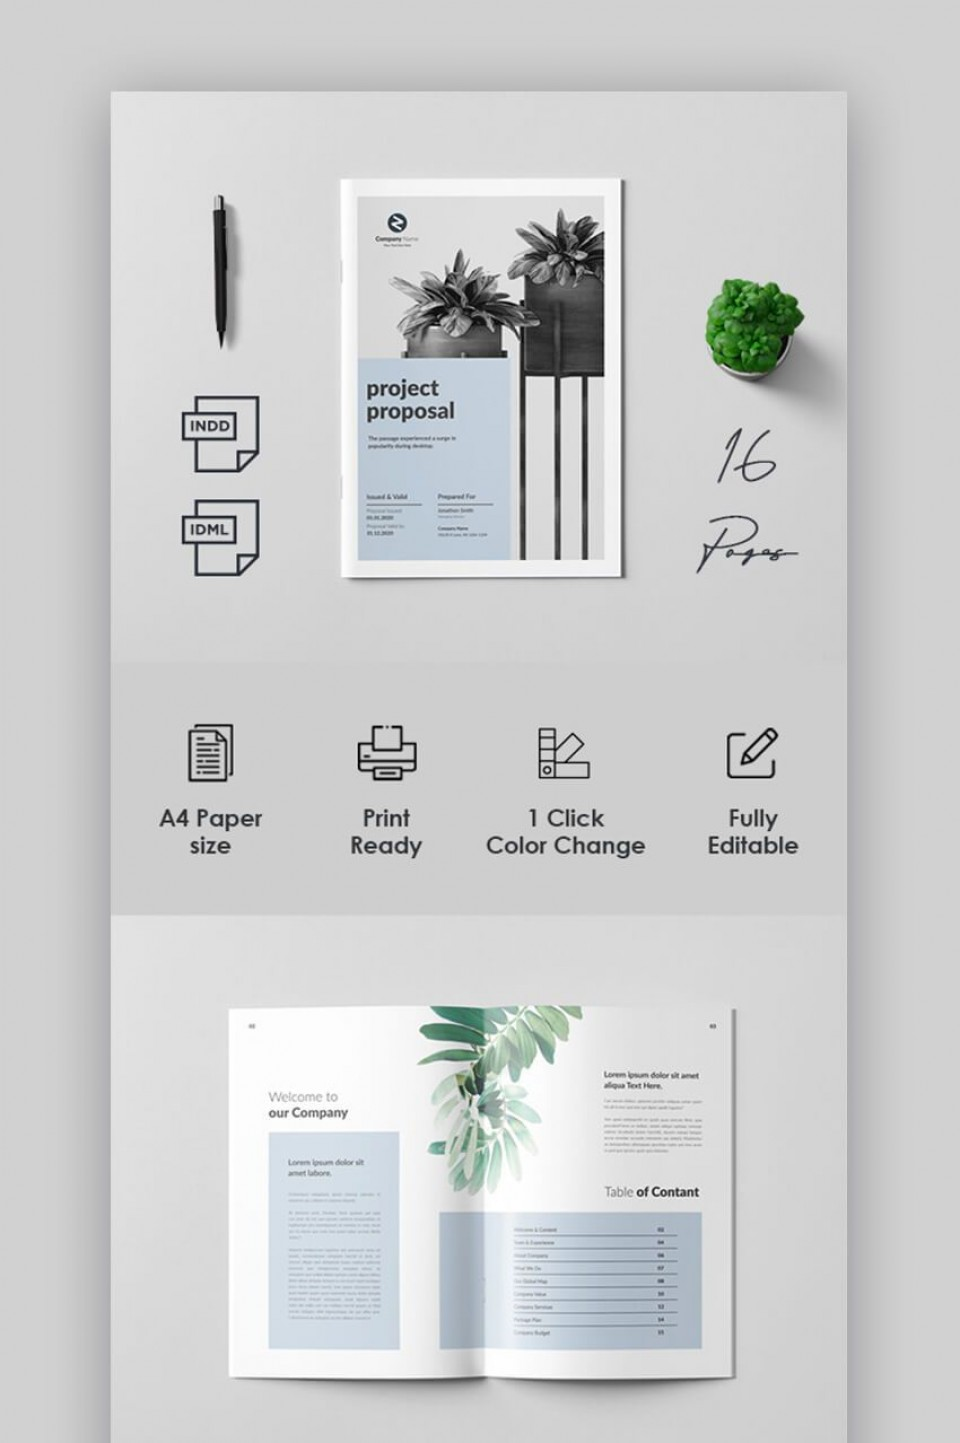 006 Staggering Social Media Proposal Template 2019 Sample 960